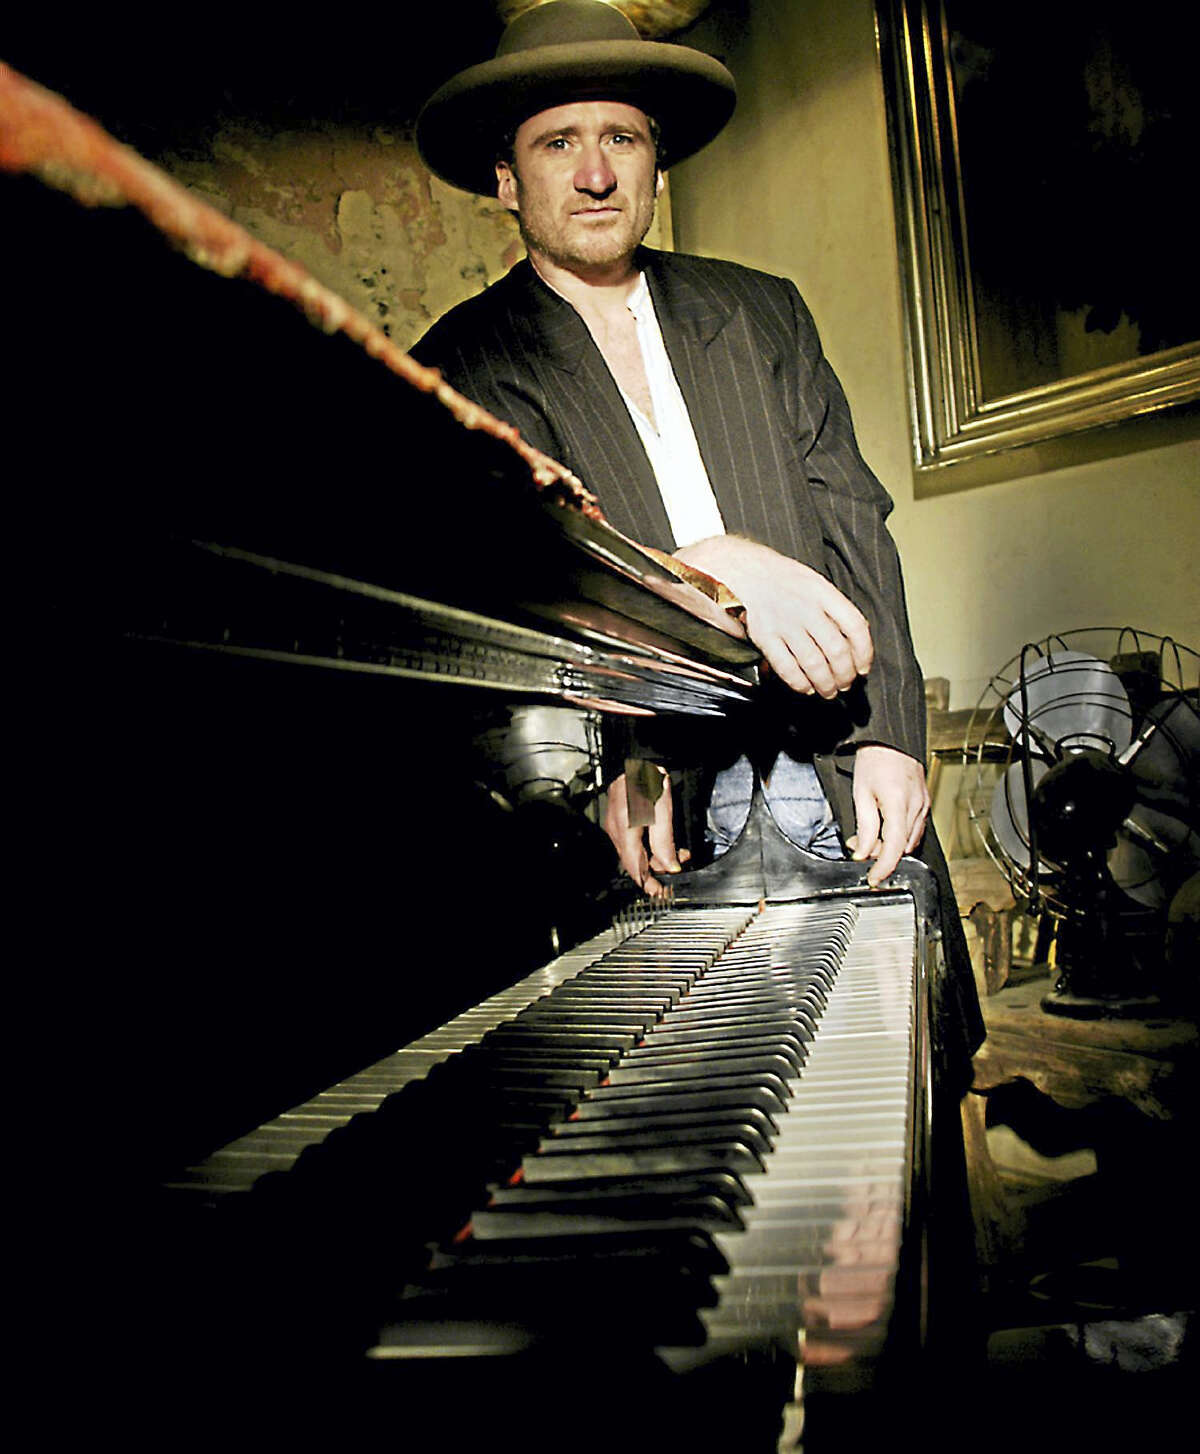 Jon Cleary just won the Grammy Award for Best Regional Roots Music Album.